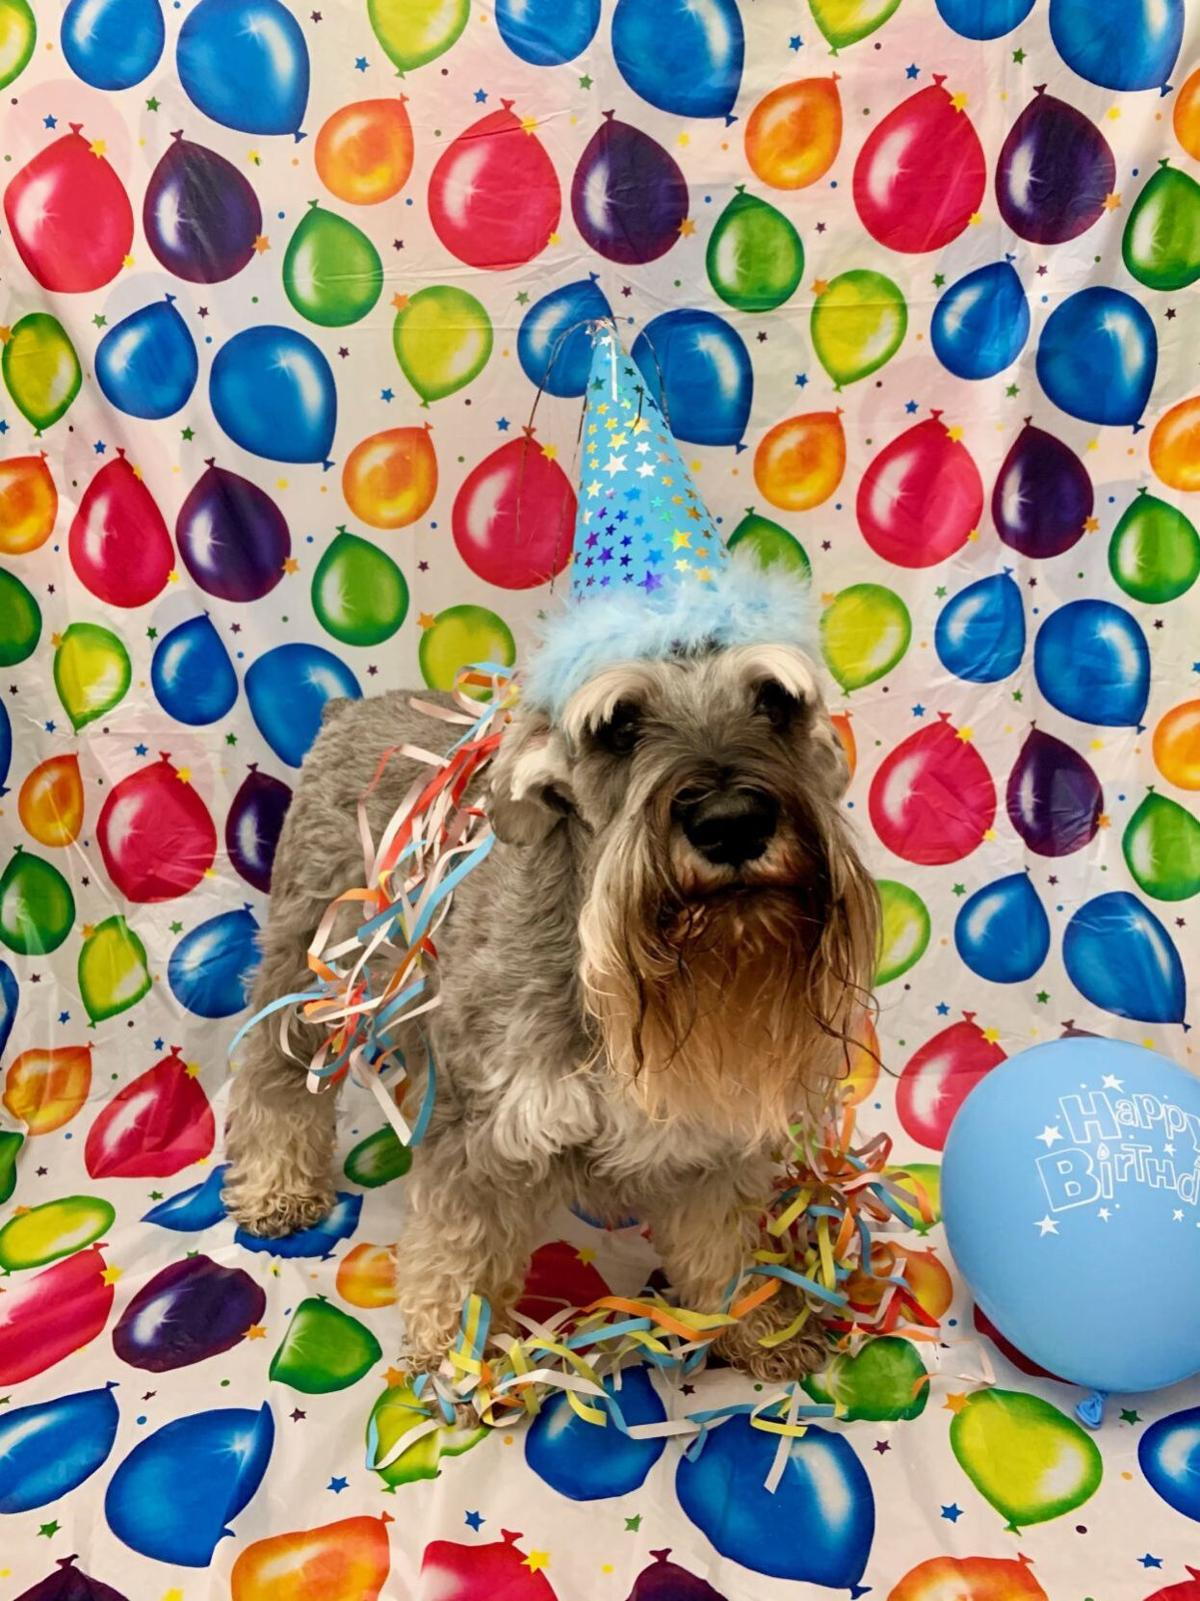 Henry Holcomb, Indiana's 'First Dog,' celebrates 10th birthday